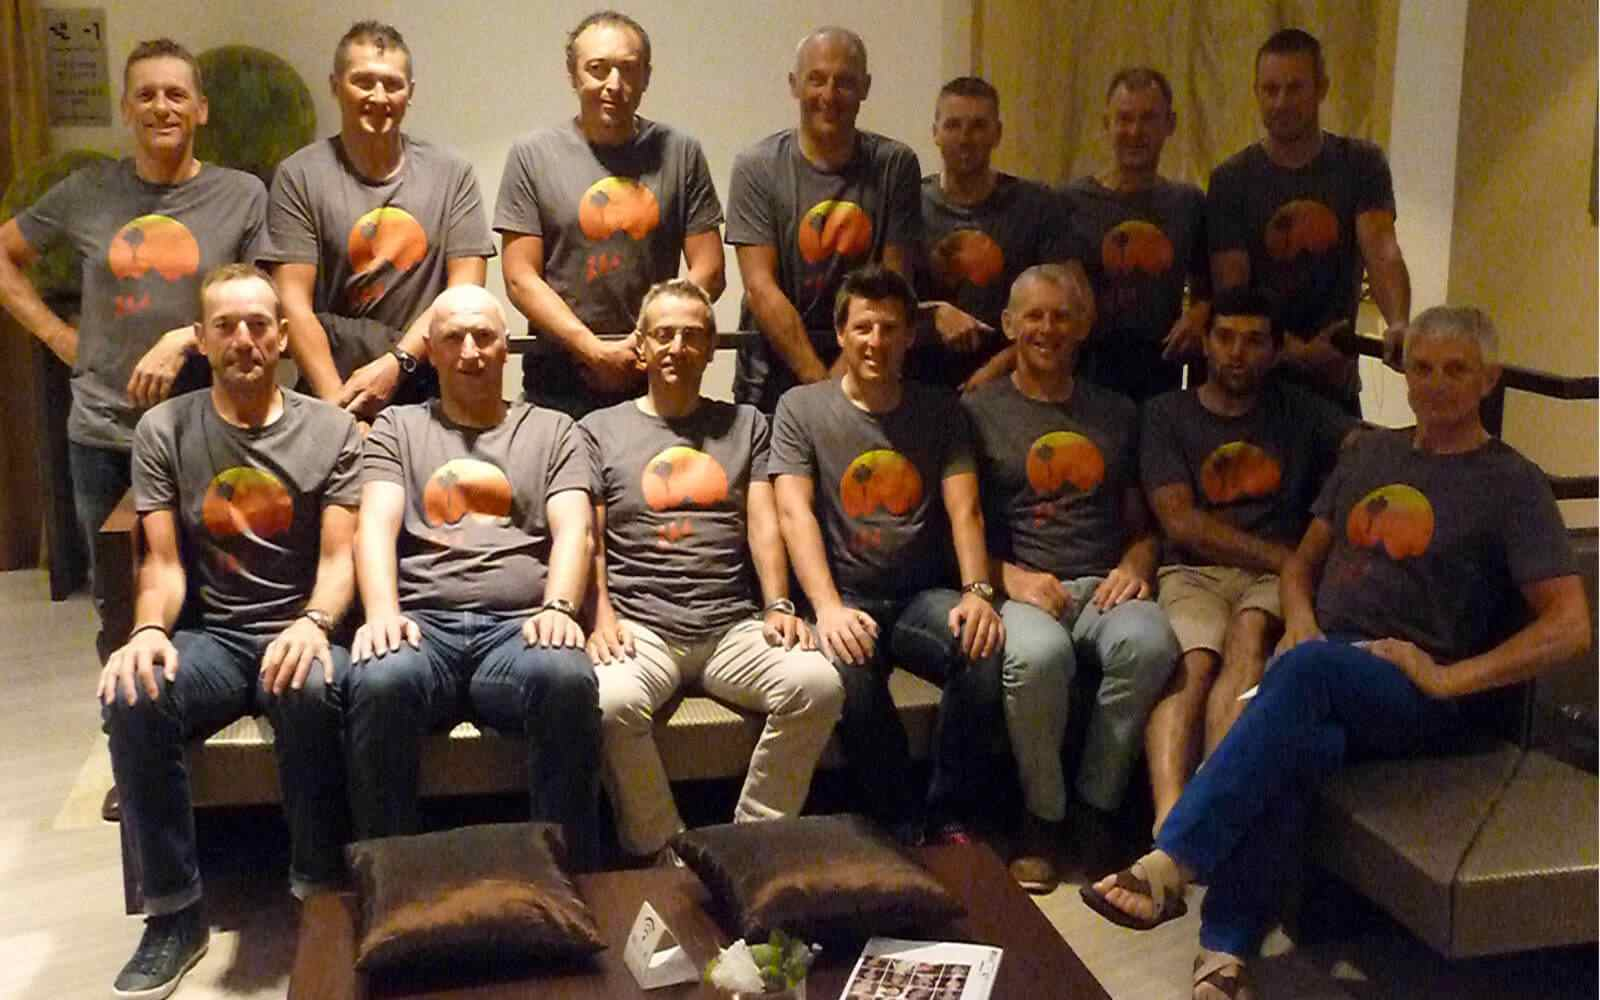 Group of cyclists wearing bespoke printed tshirt